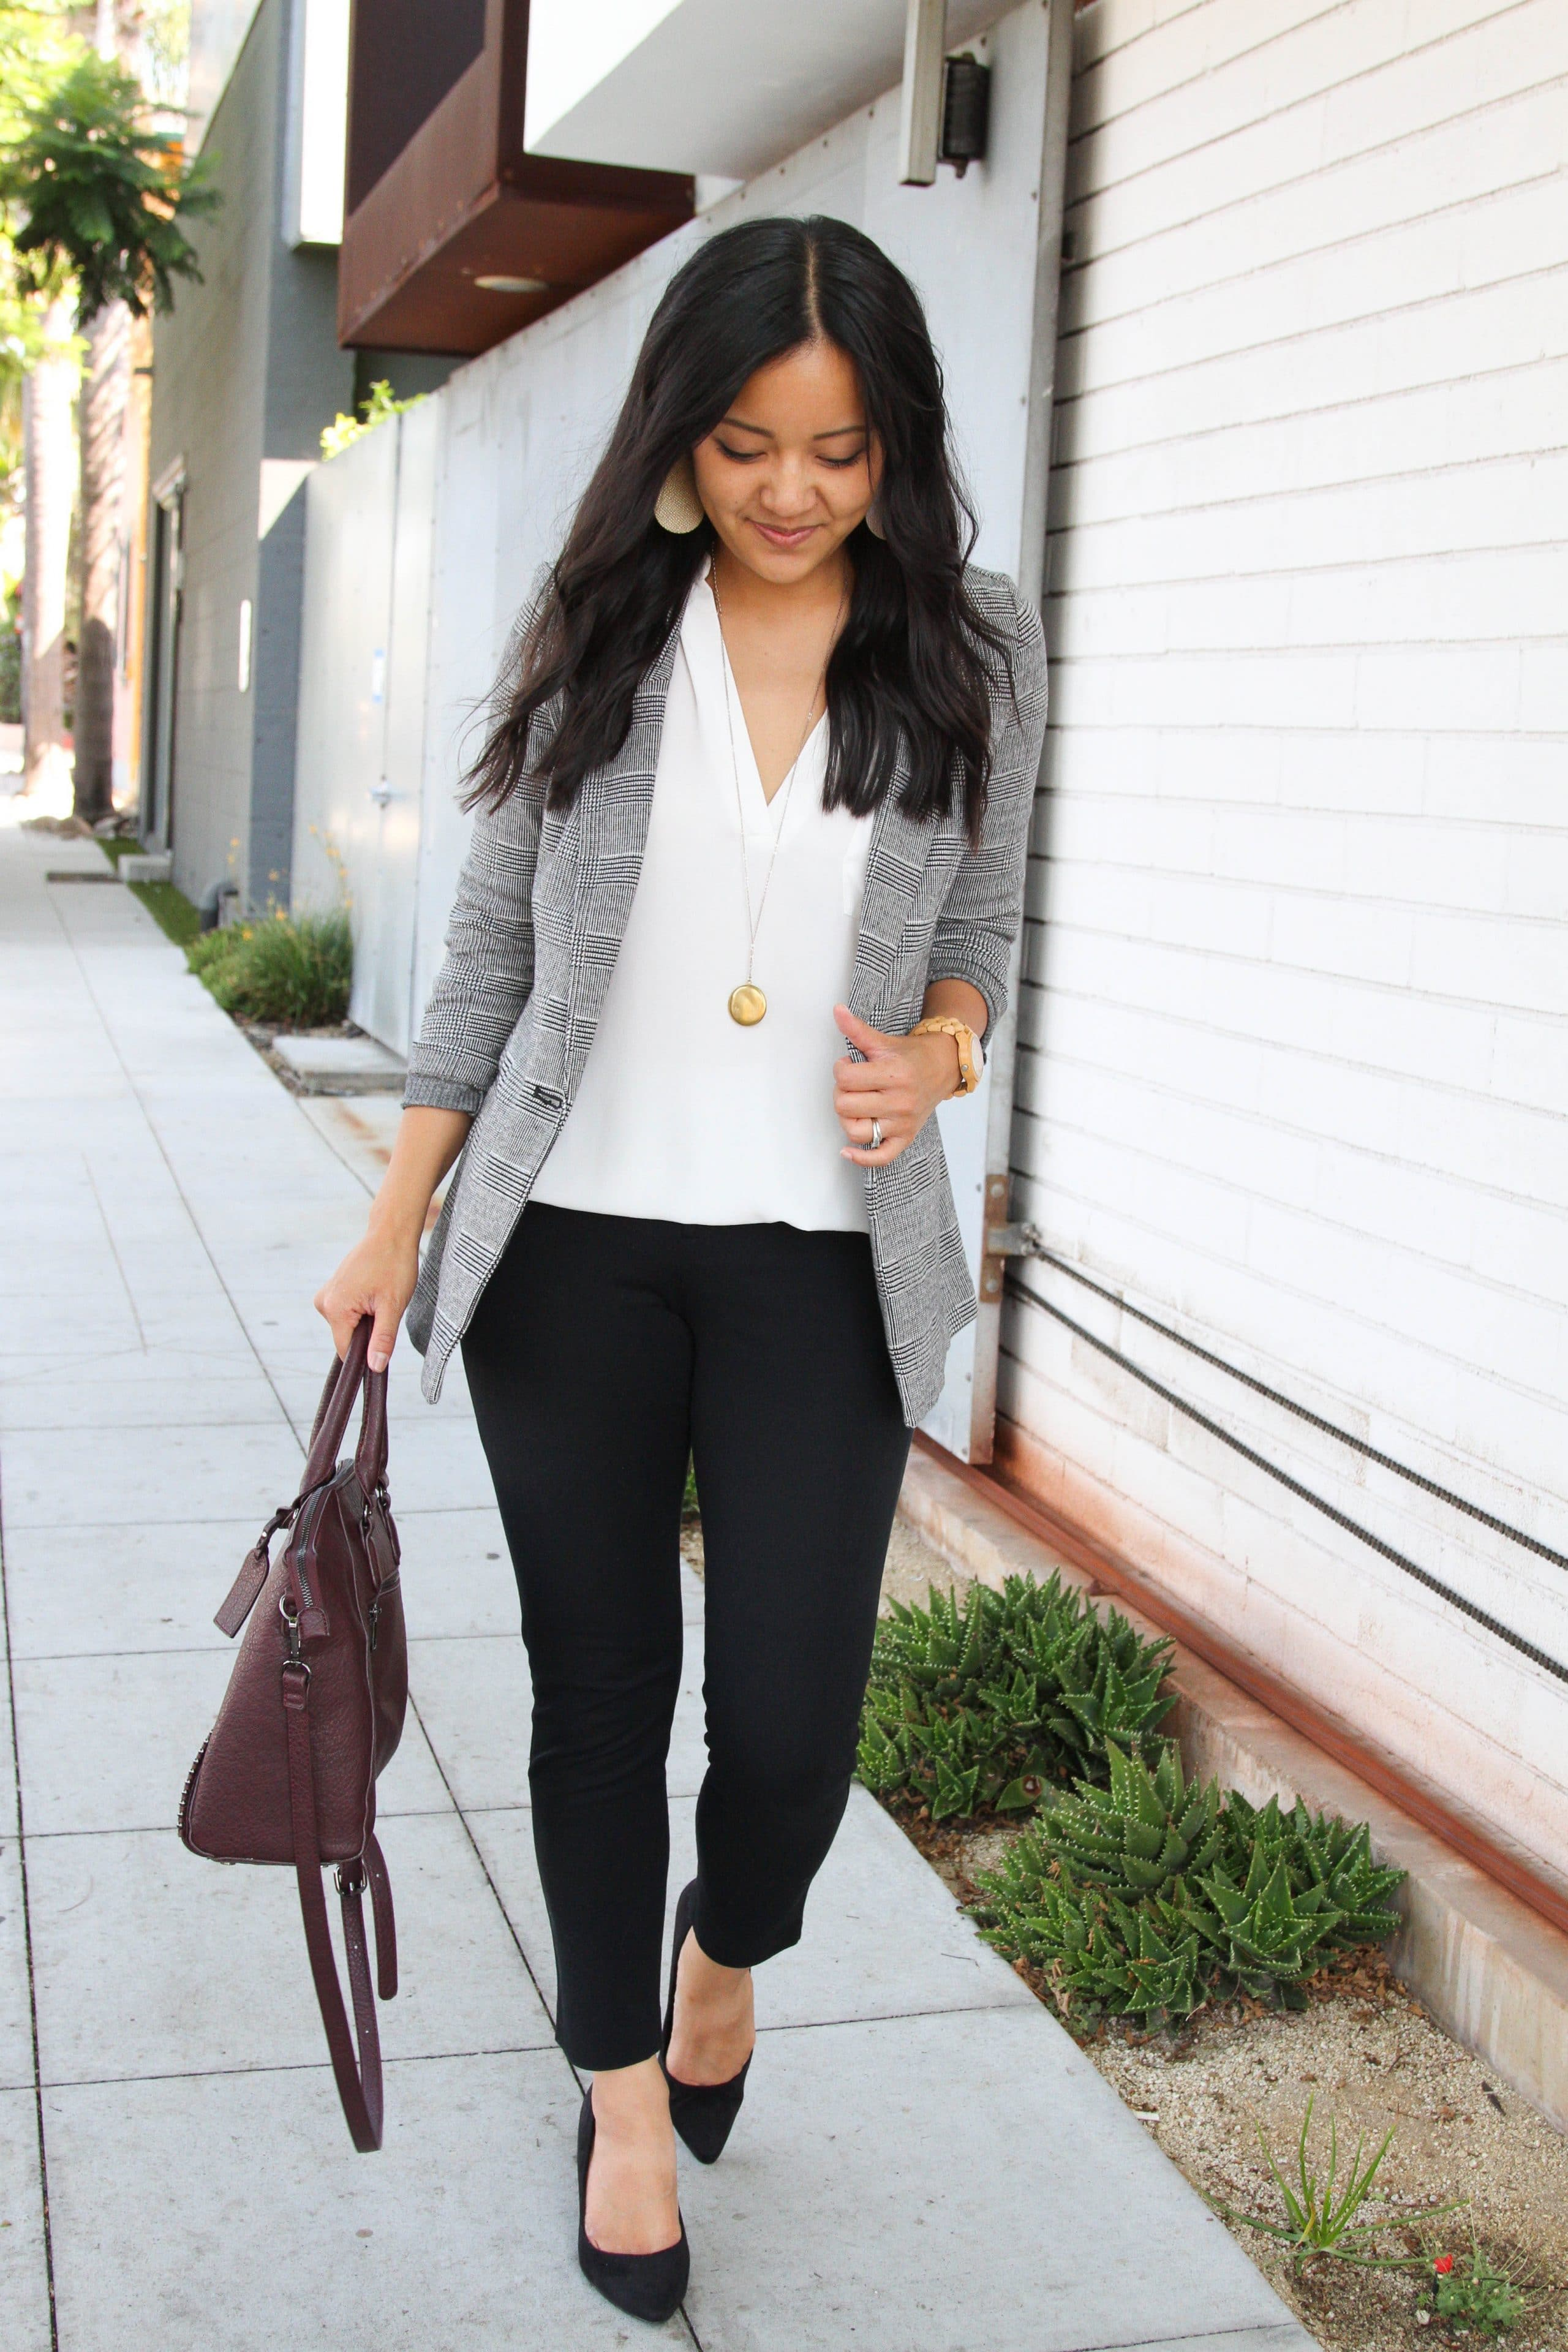 business casual: grey and white blazer + white blouse + black pants + black flats + maroon purse